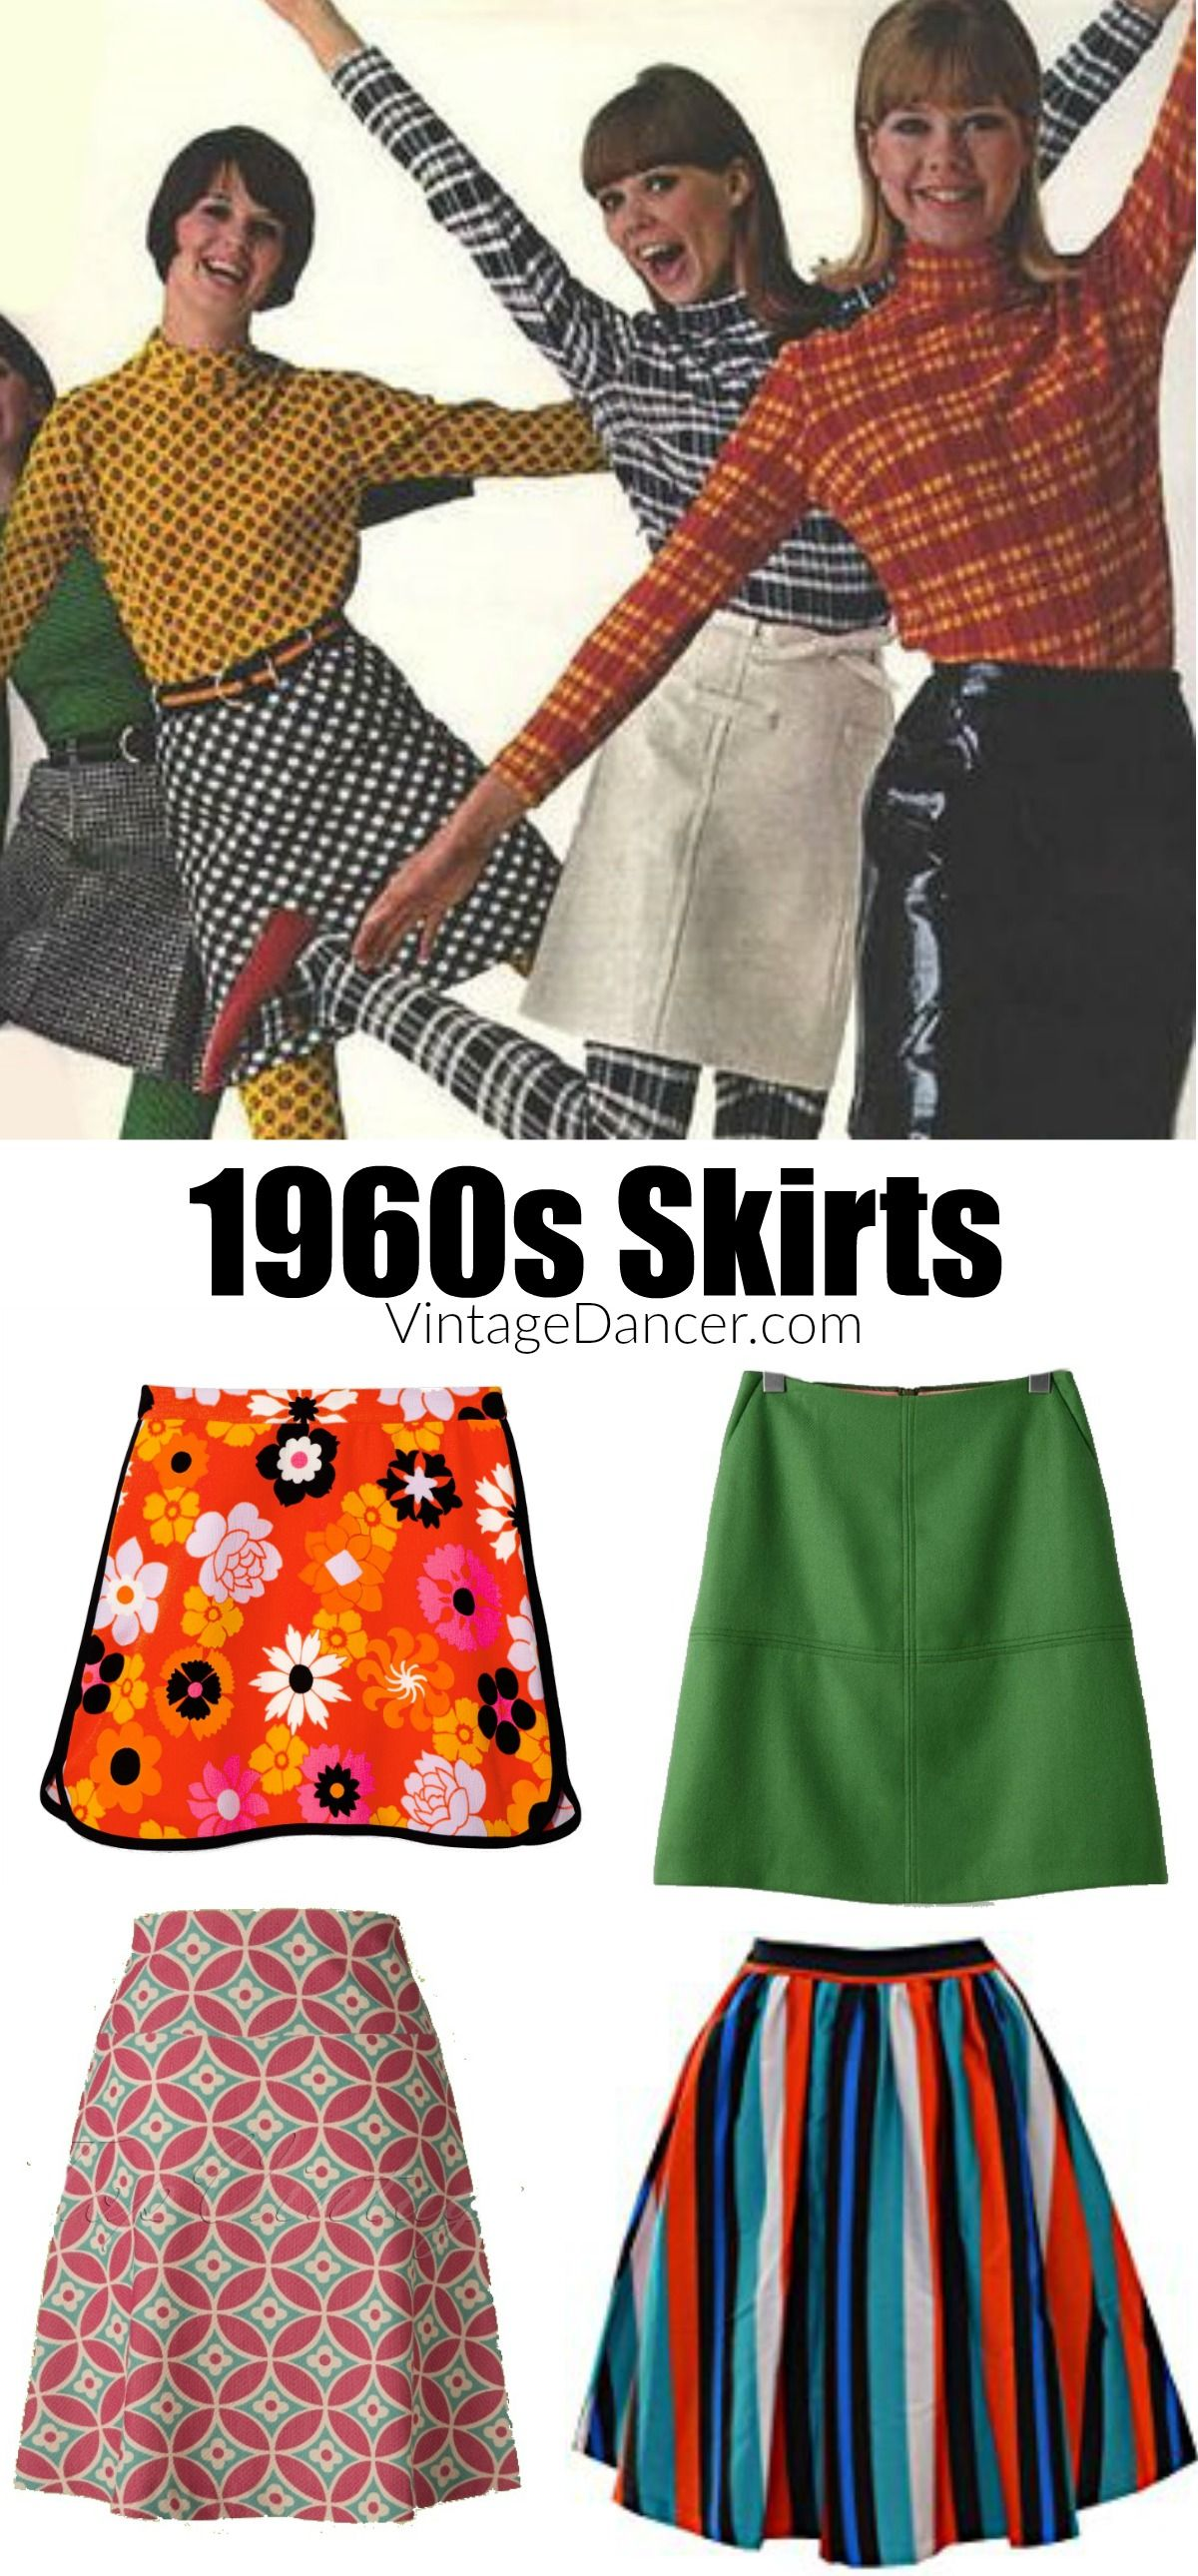 d011837e 1960s skirts, mod skirts, hippie skirts, circle skirts, pencil skirt.  Sixties fashion and more